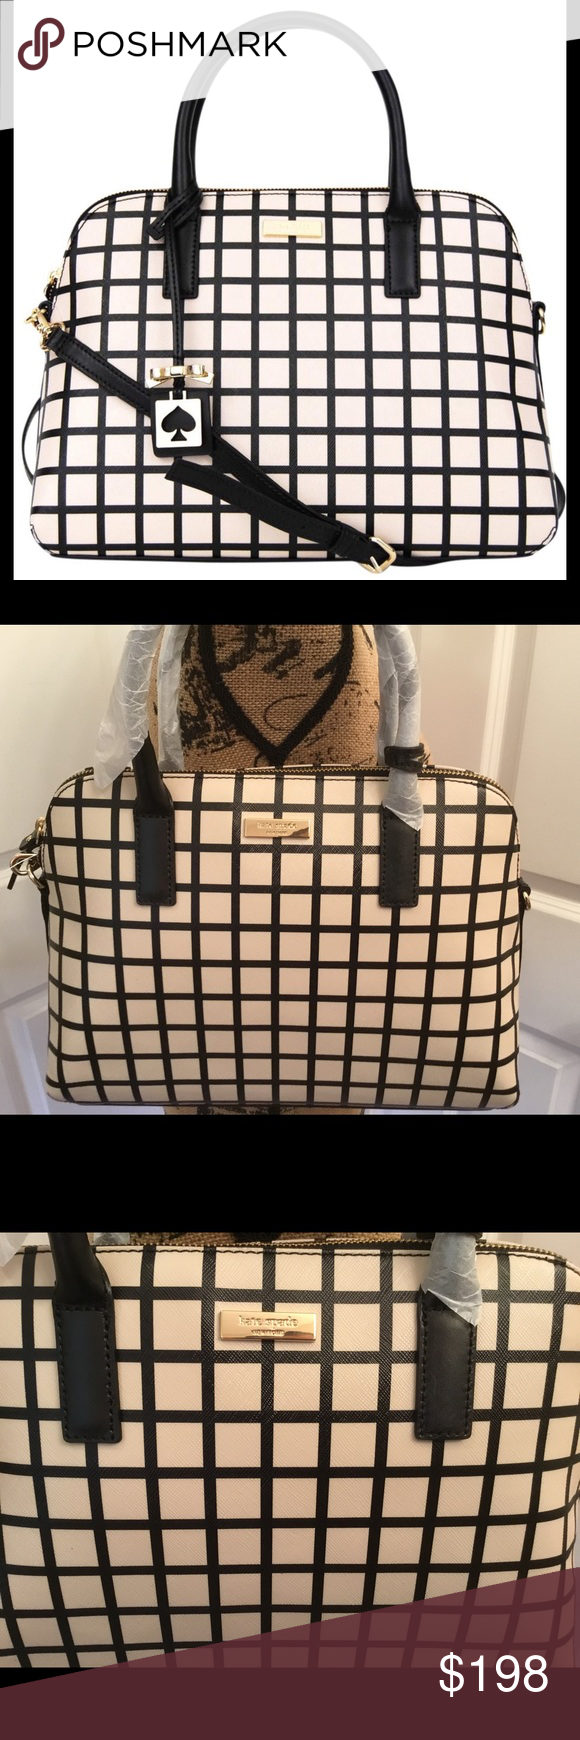 ad31bc3717104 Kate Spade Brightwater Dr Rachelle Bicolor Plaid This is a brand new with  tags Kate Spade